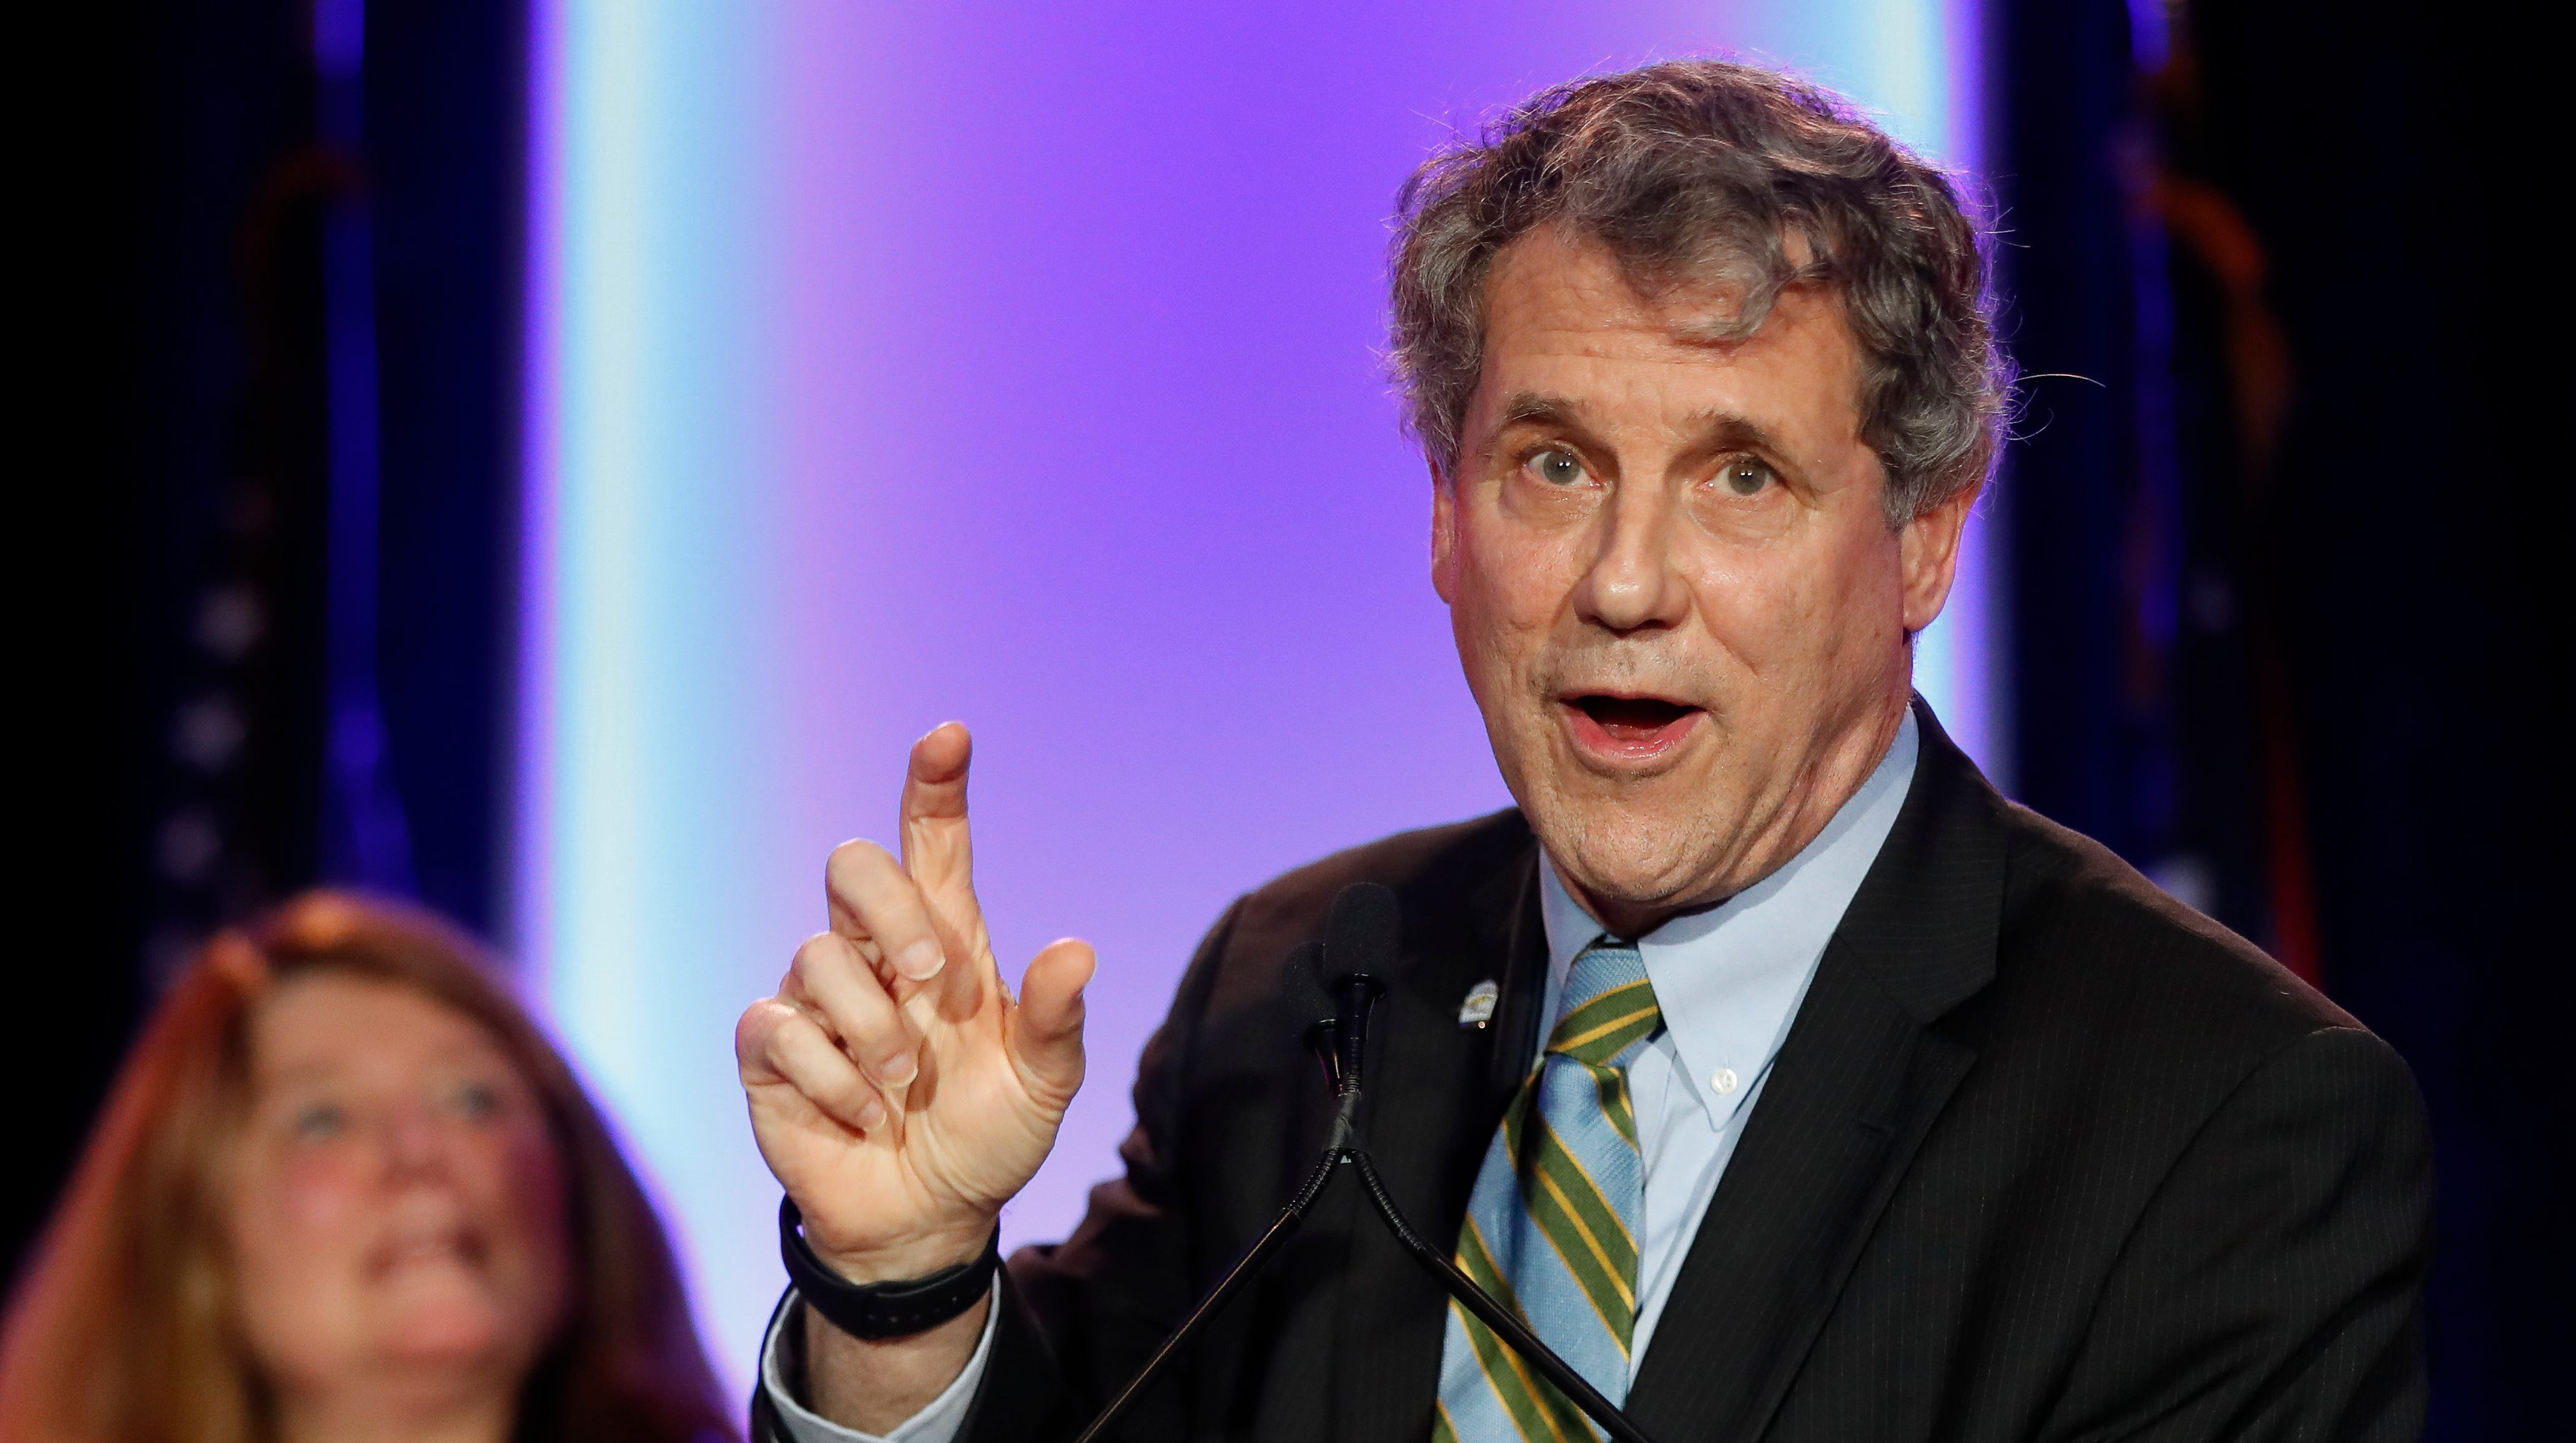 U.S. Sen. Sherrod Brown, D-Ohio, right, speaks alongside his wife Connie Schultz, left, during the Ohio Democratic Party election night watch party, Tuesday, Nov. 6, 2018, in Columbus, Ohio. (AP Photo/John Minchillo)